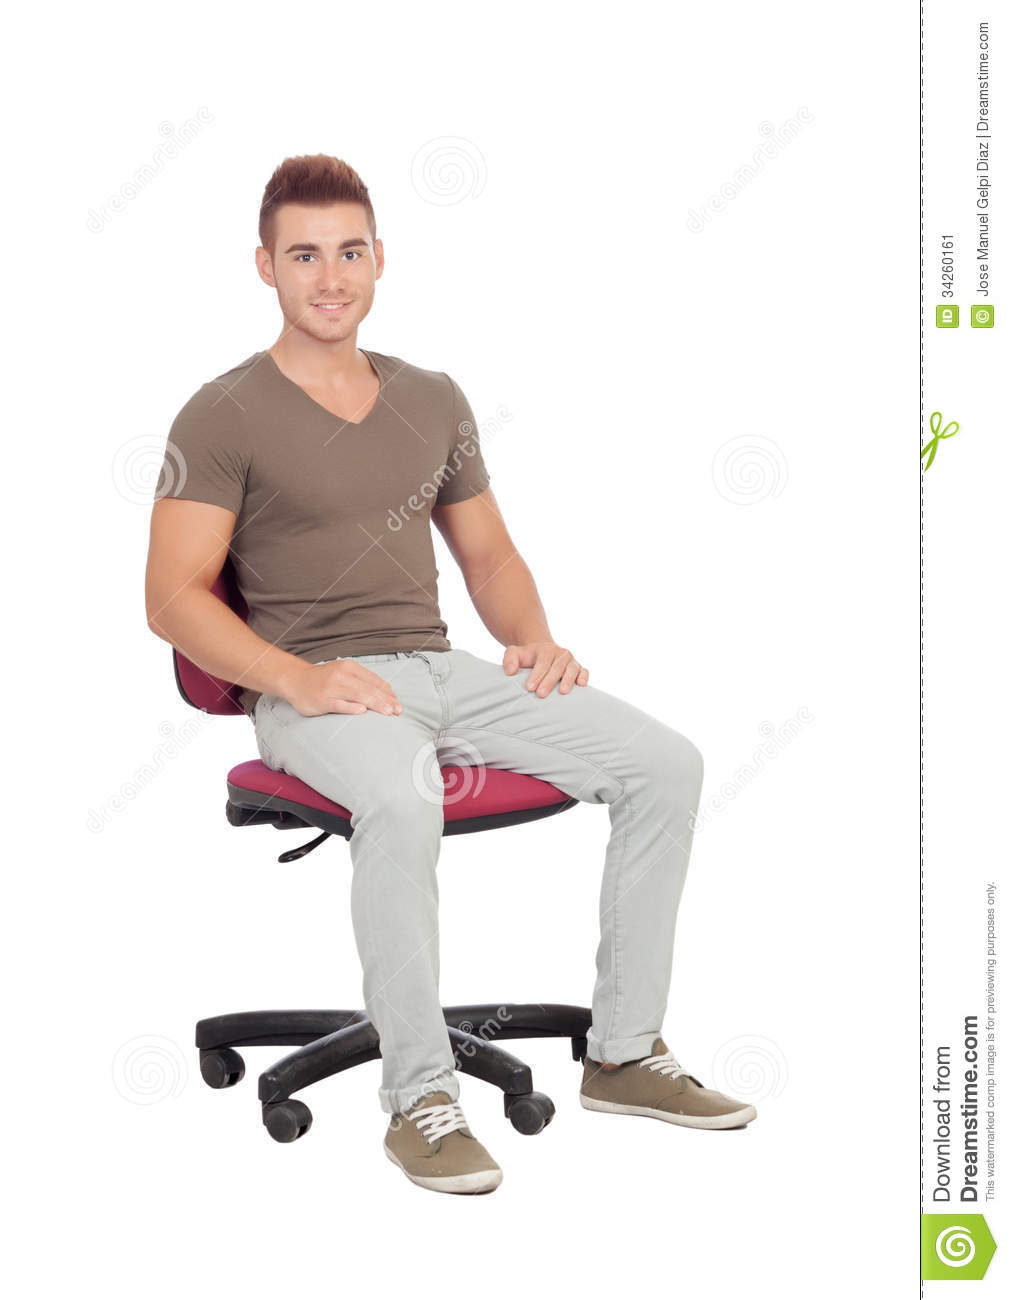 design office chair with Stock Image Casual Young Man Sitting Office Chair Isolated White Background Image34260161 on Furniture Blocks Design as well Convenience Store Layout also Eames Plastic Chairs also Homeofficemadeeasy together with Classroom Tablet Arm Nest Chairs.